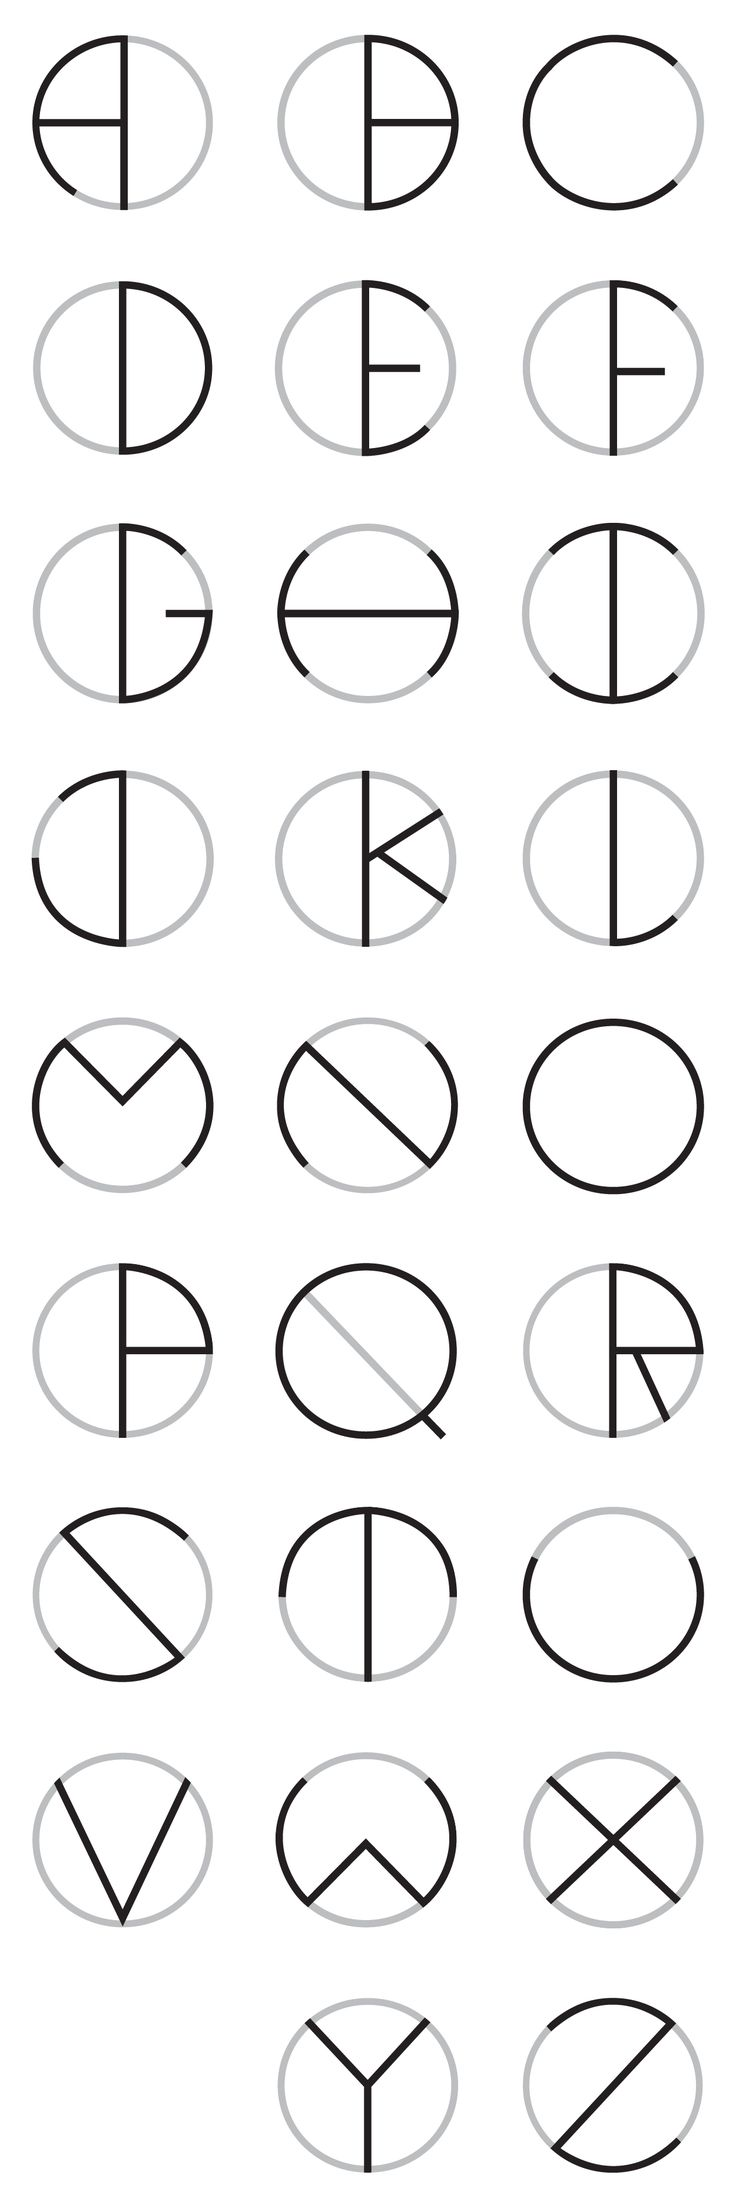 a typeface inspired and made from circles.